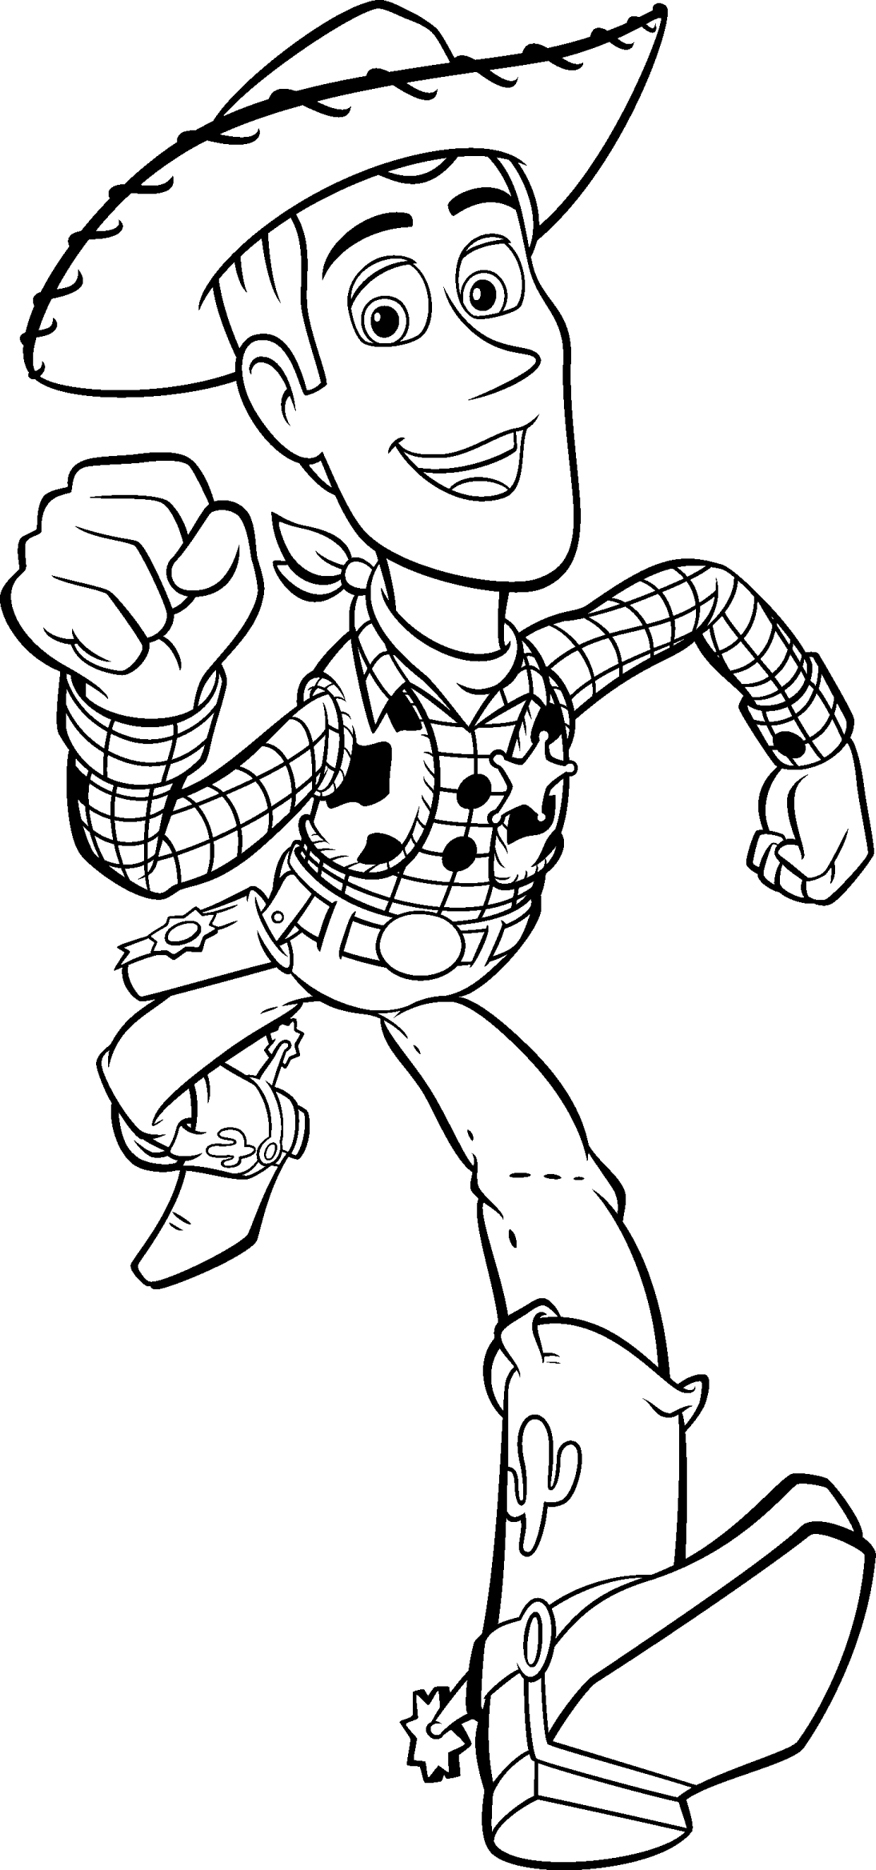 Pages story. Woody toy coloring free